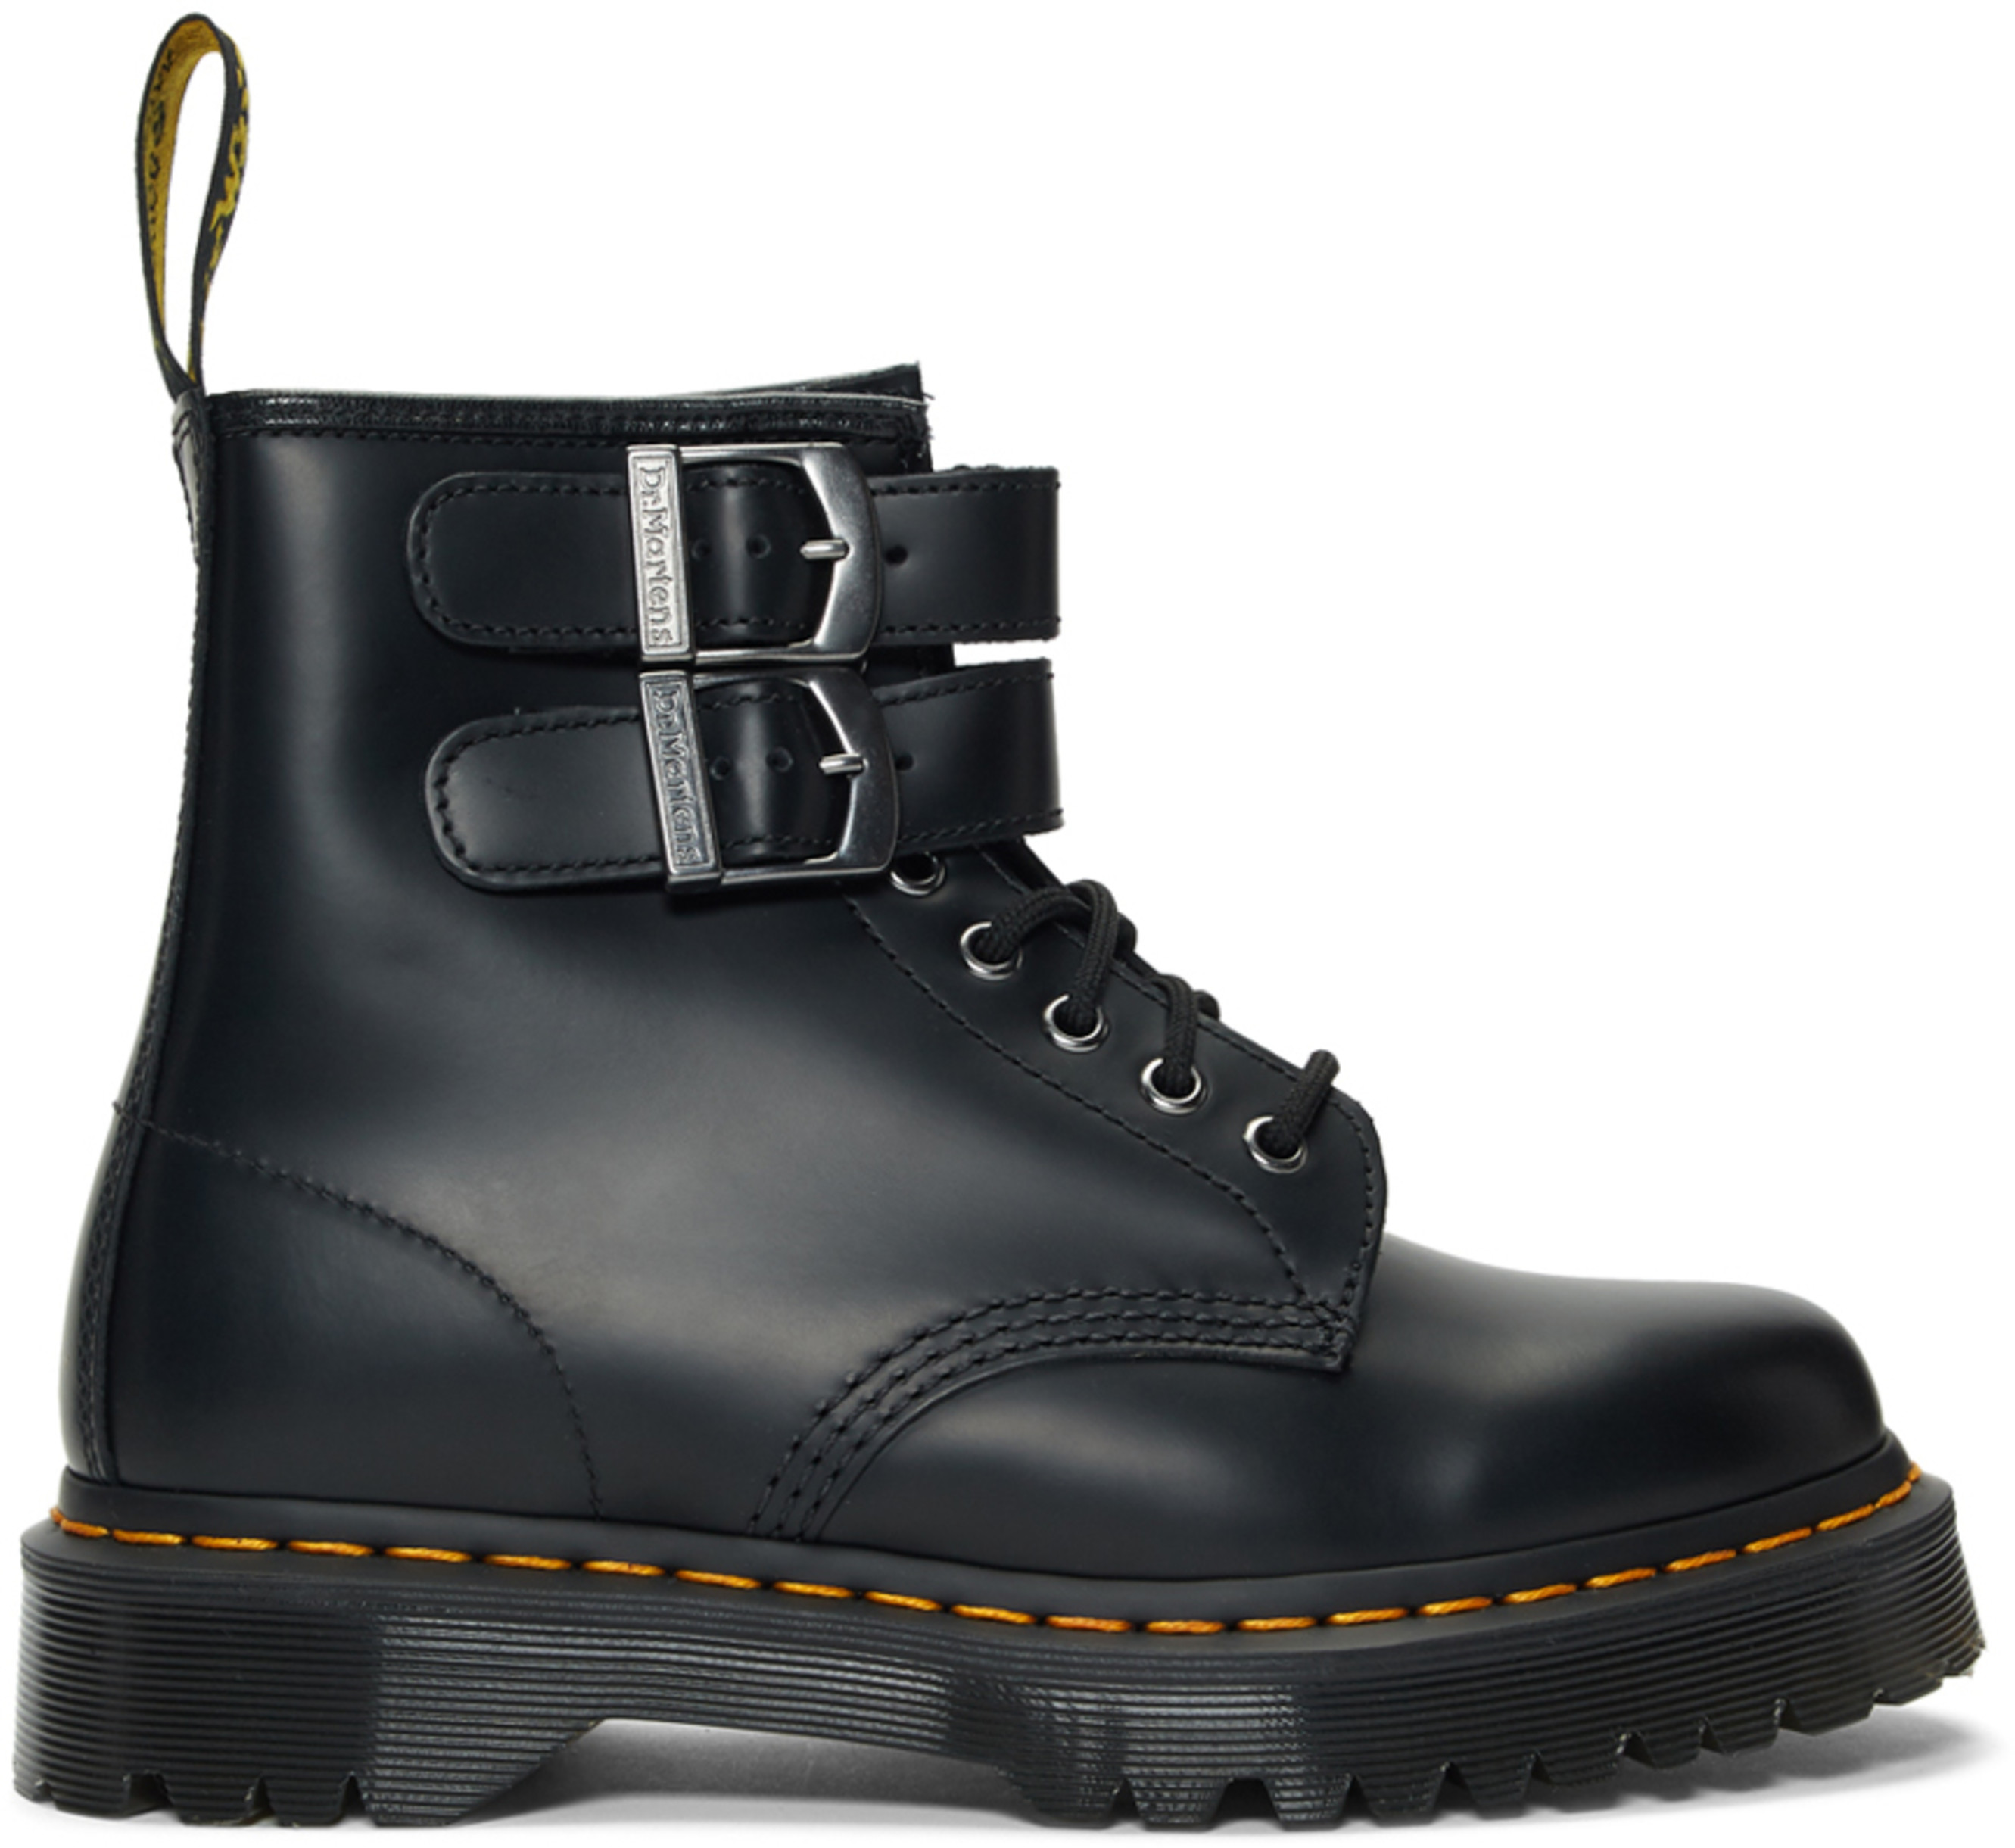 499d604b5cd7 Dr. Martens for Men SS19 Collection